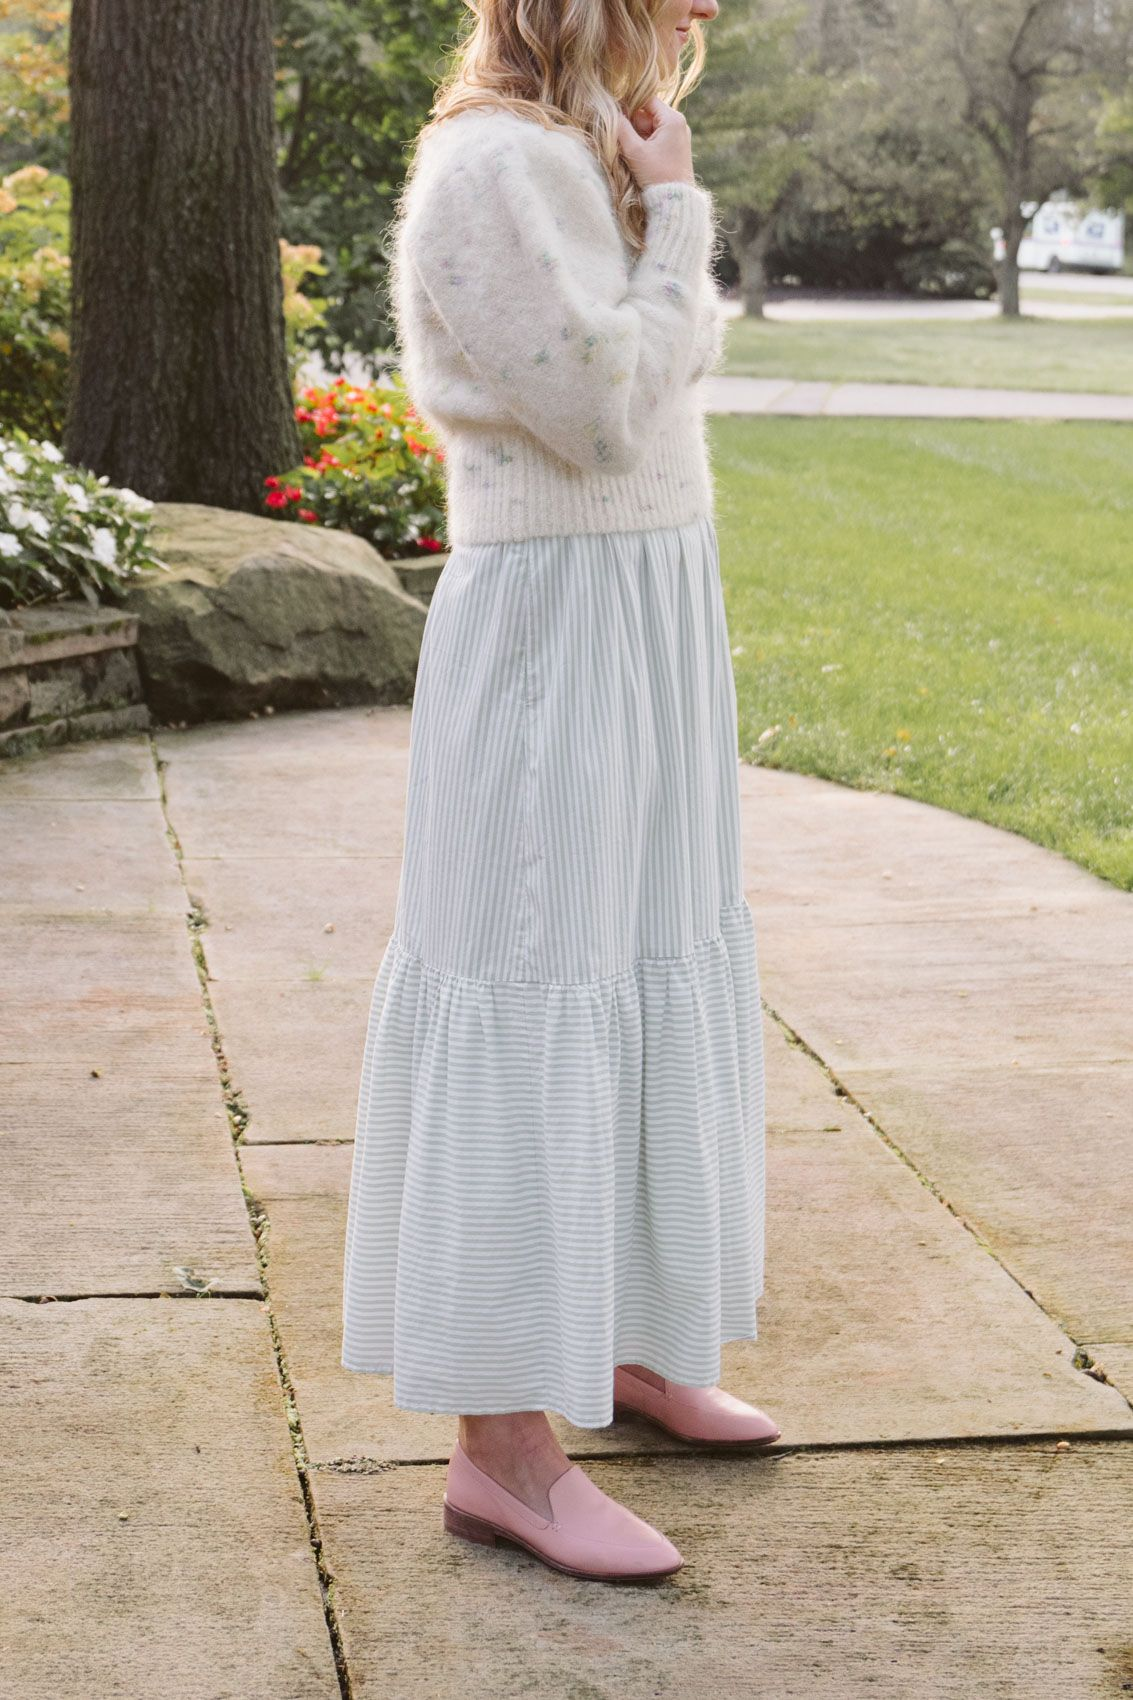 Sweater Over Dress Outfit How To The Gem Fall Dress Outfit Maxi Dresses Fall Sweater Over Dress [ 1700 x 1133 Pixel ]